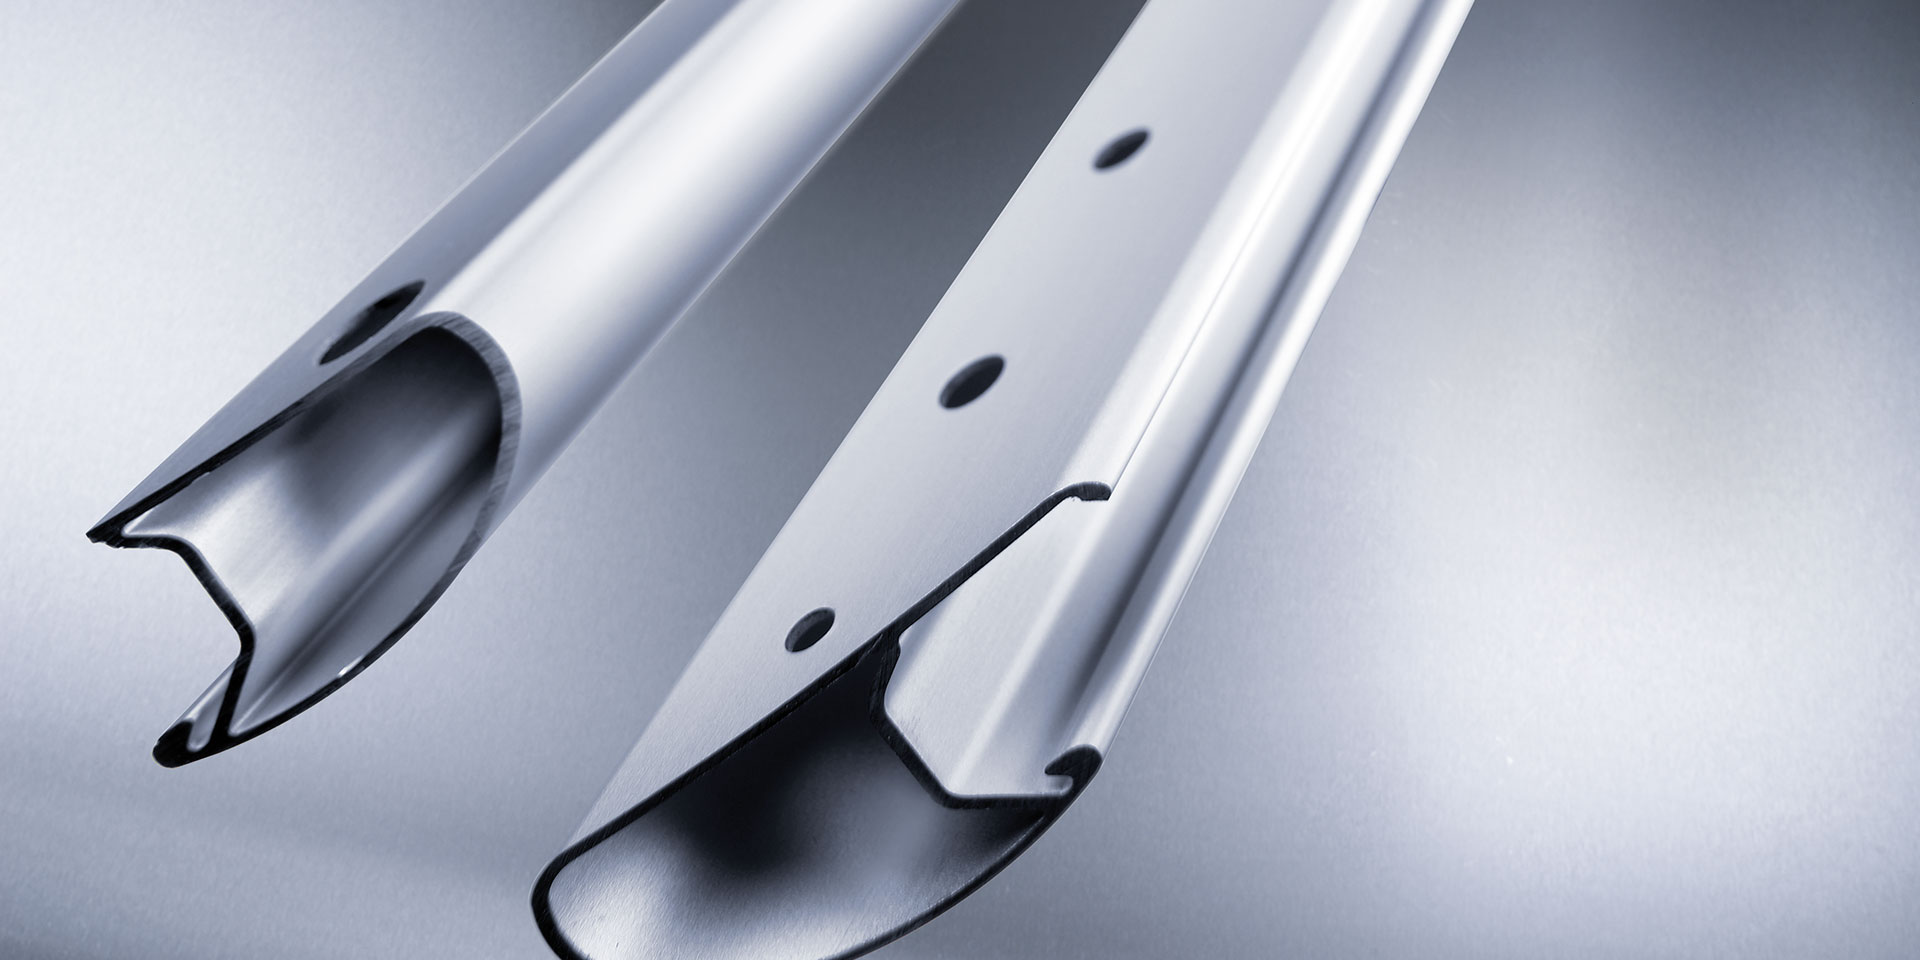 Aluminium profiles - We are a producer of top quality